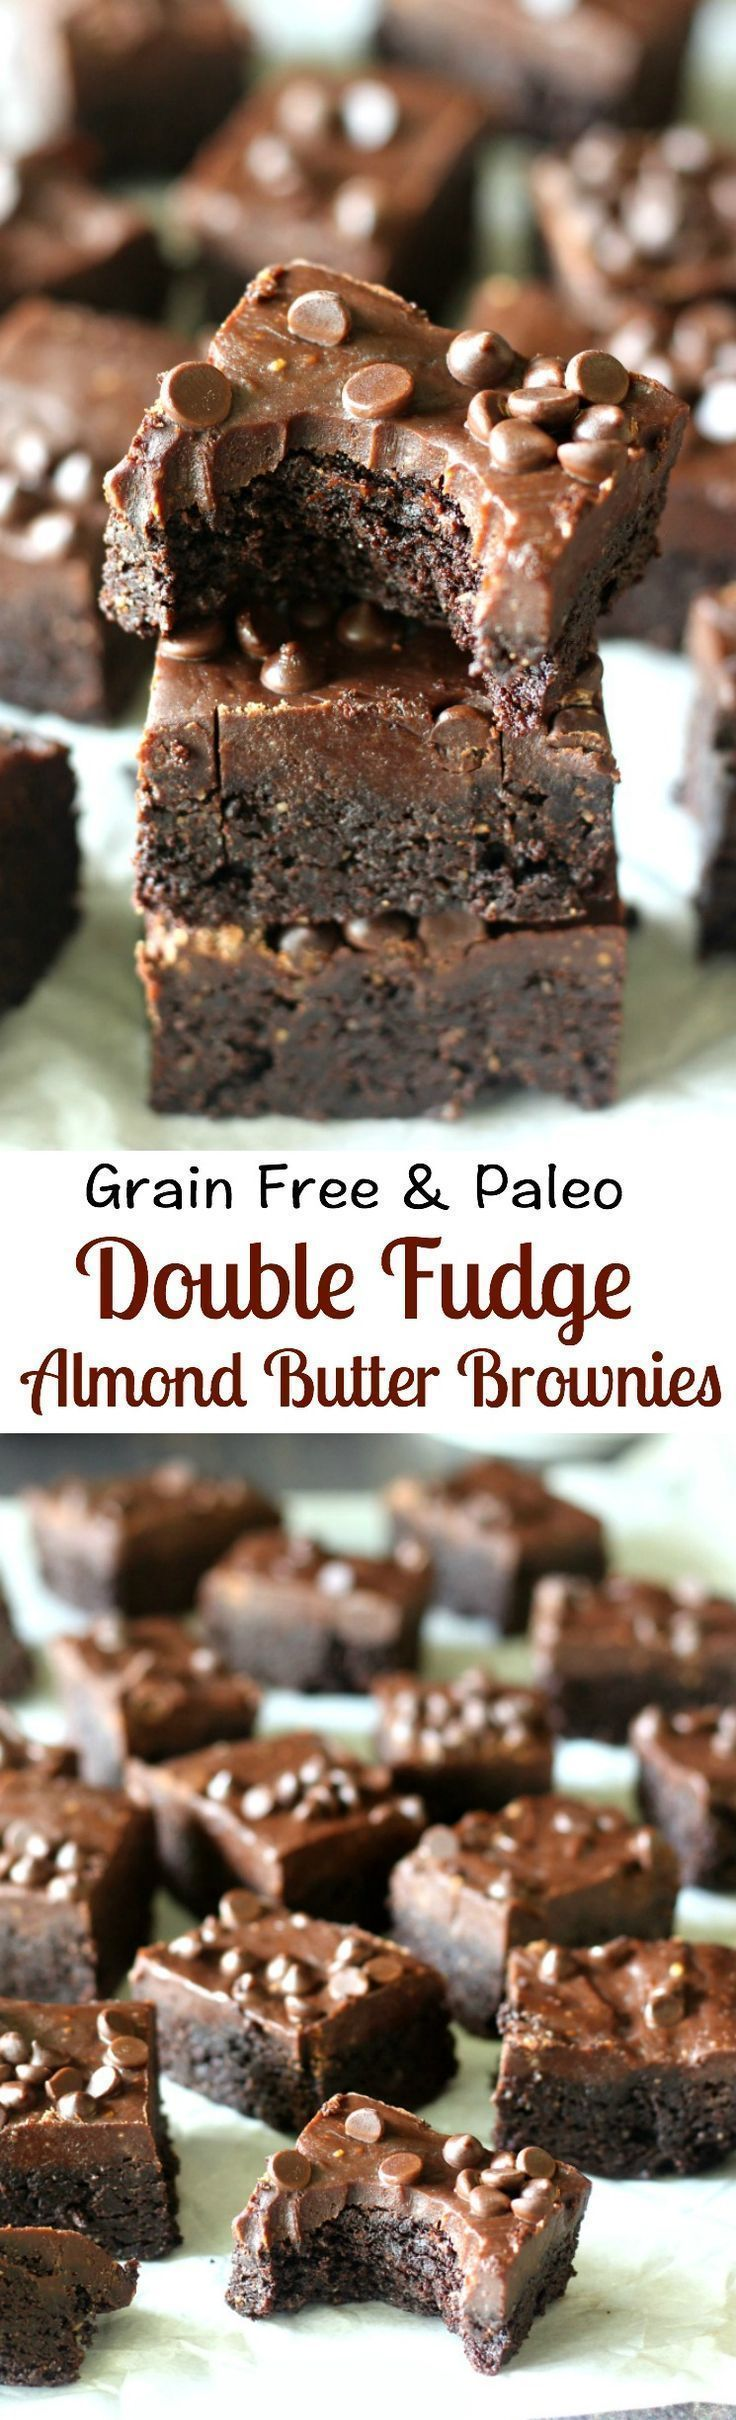 Grain Free and Paleo Double Fudge Almond Butter Brownies - rich, decadent, gluten free, dairy free, soy free, no refined sugar http://www.paleorunningmomma.com/almond-butter-brownies-paleo/